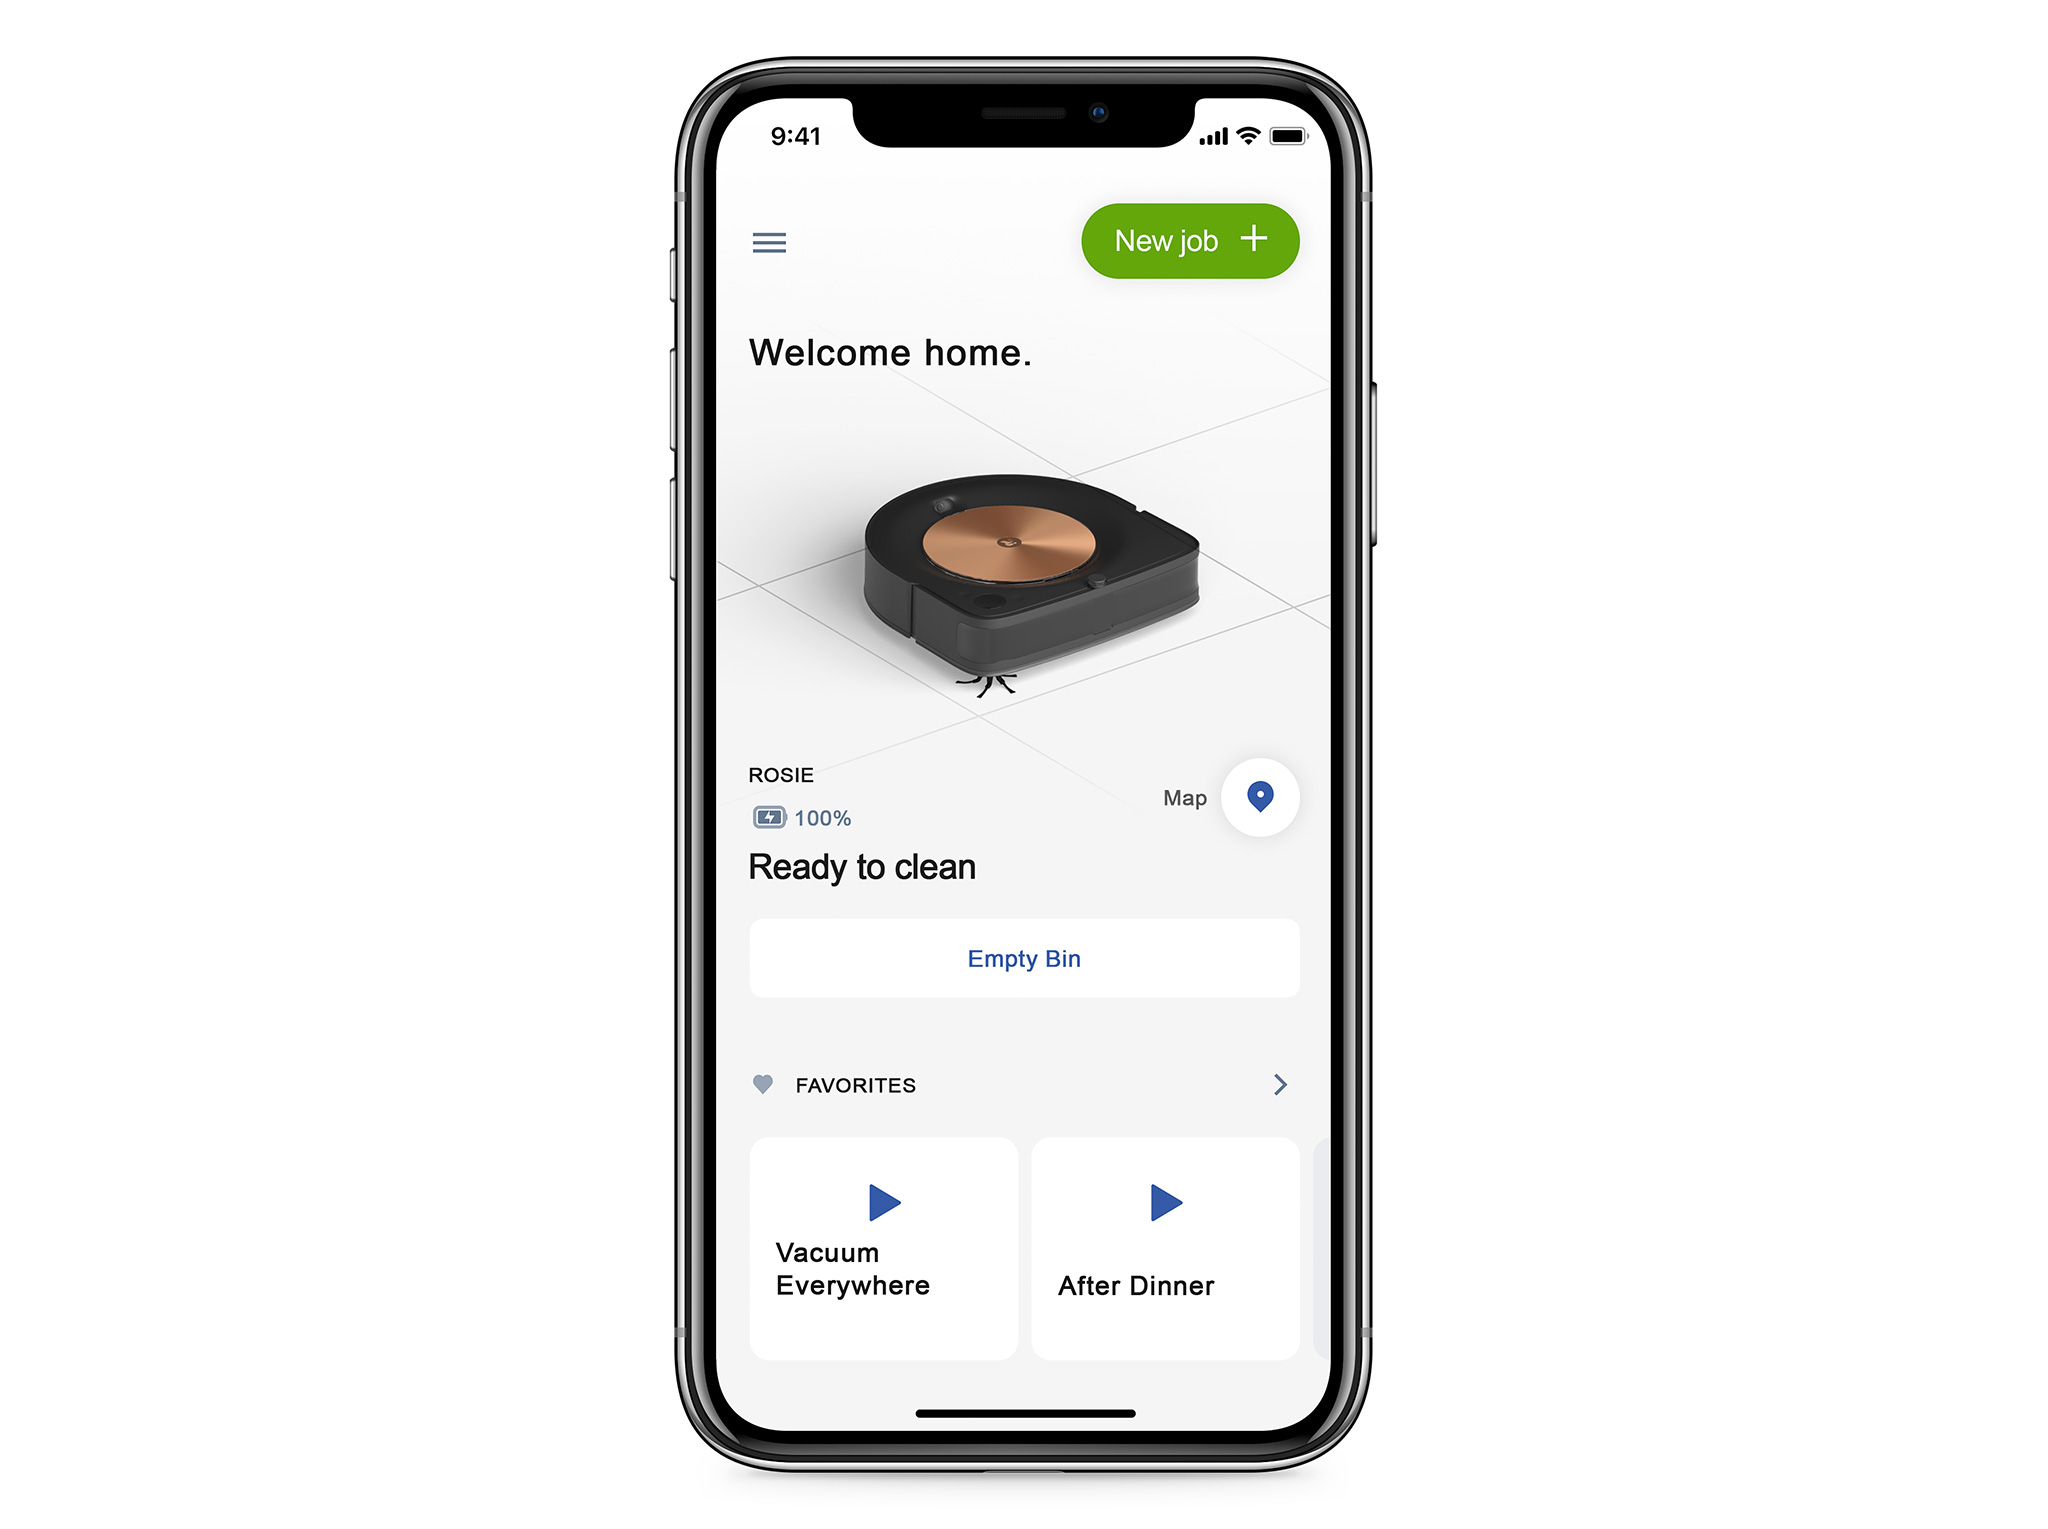 The new iRobot Home App, powered by iRobot Genius™, takes users beyond standard app control to give them a personalized home cleaning command and control center. The app, which works with all Wi-Fi connected iRobot products, supports cleaning based on a user's habits and personal preferences, enabling a smarter and more efficient customer experience.